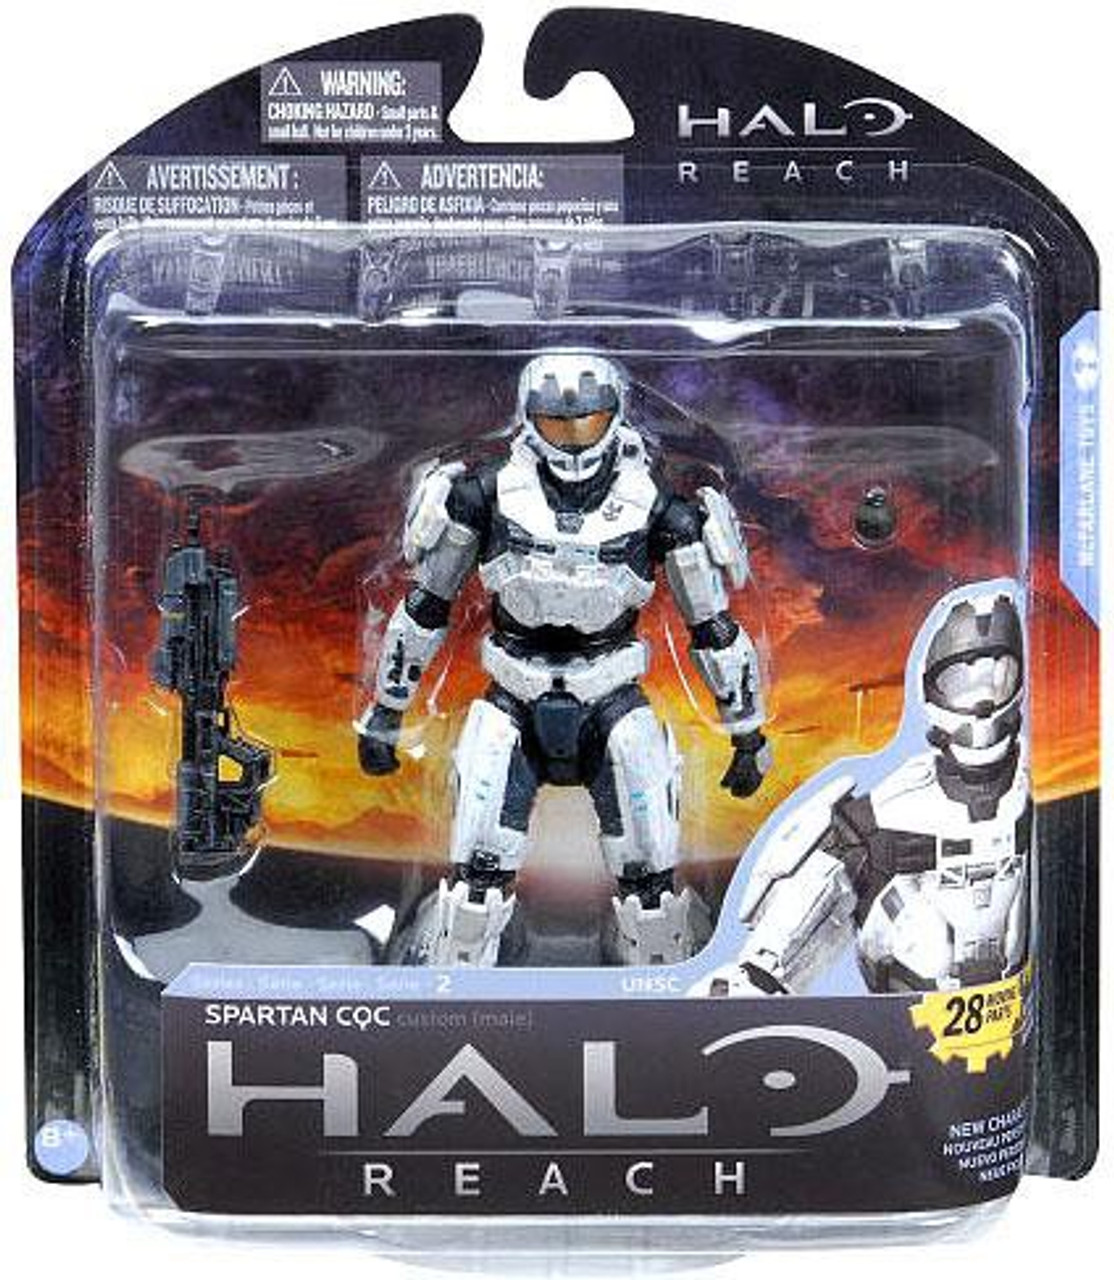 McFarlane Toys Halo Reach Series 2 Spartan CQC Action Figure [White]